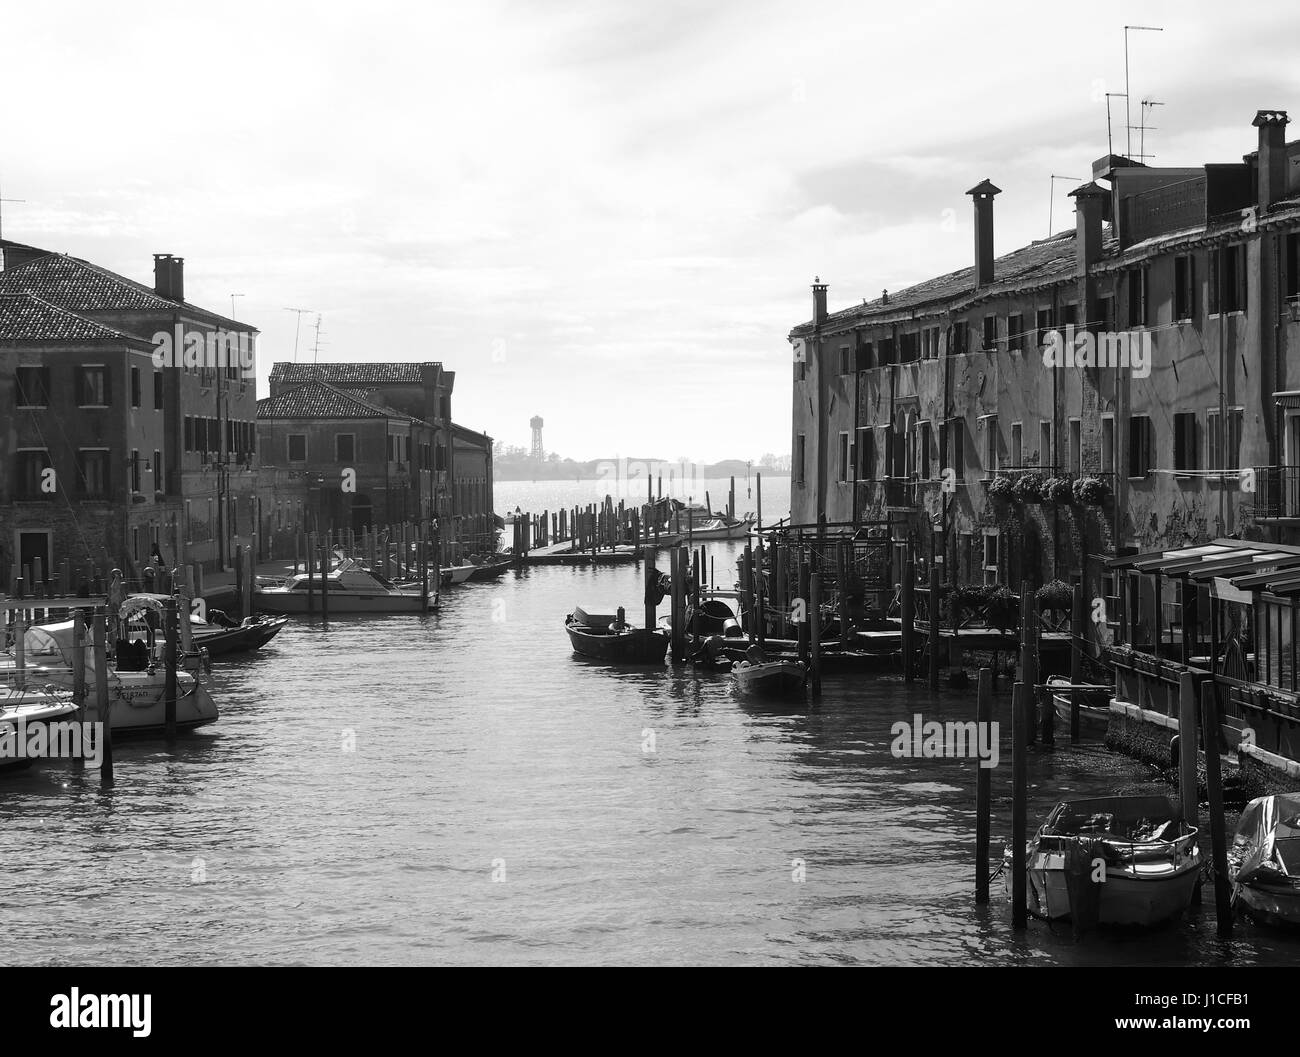 old buildings boats and canal in guidecca in venice - Stock Image